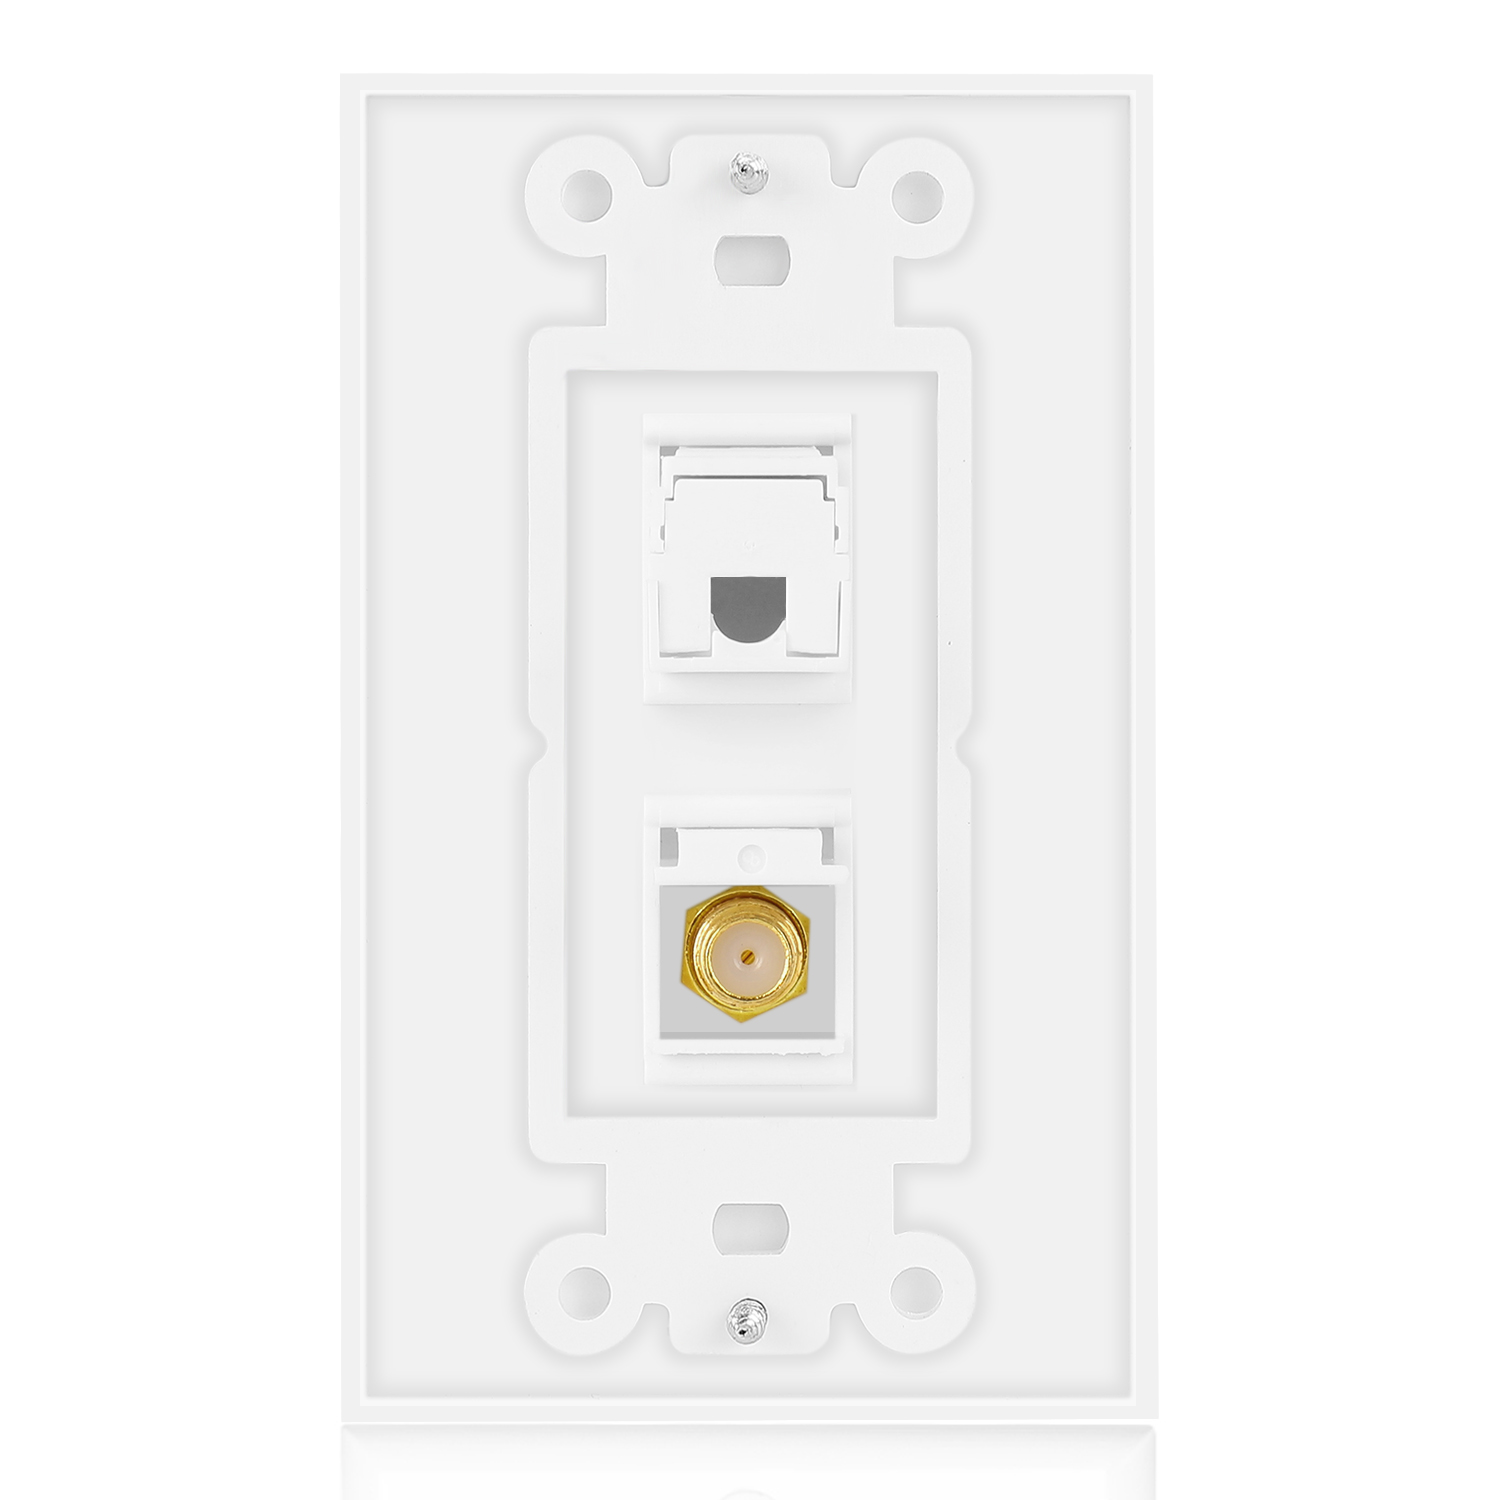 Ethernet Coax Wall Plate with 1 RJ45 Port and 1 Gold